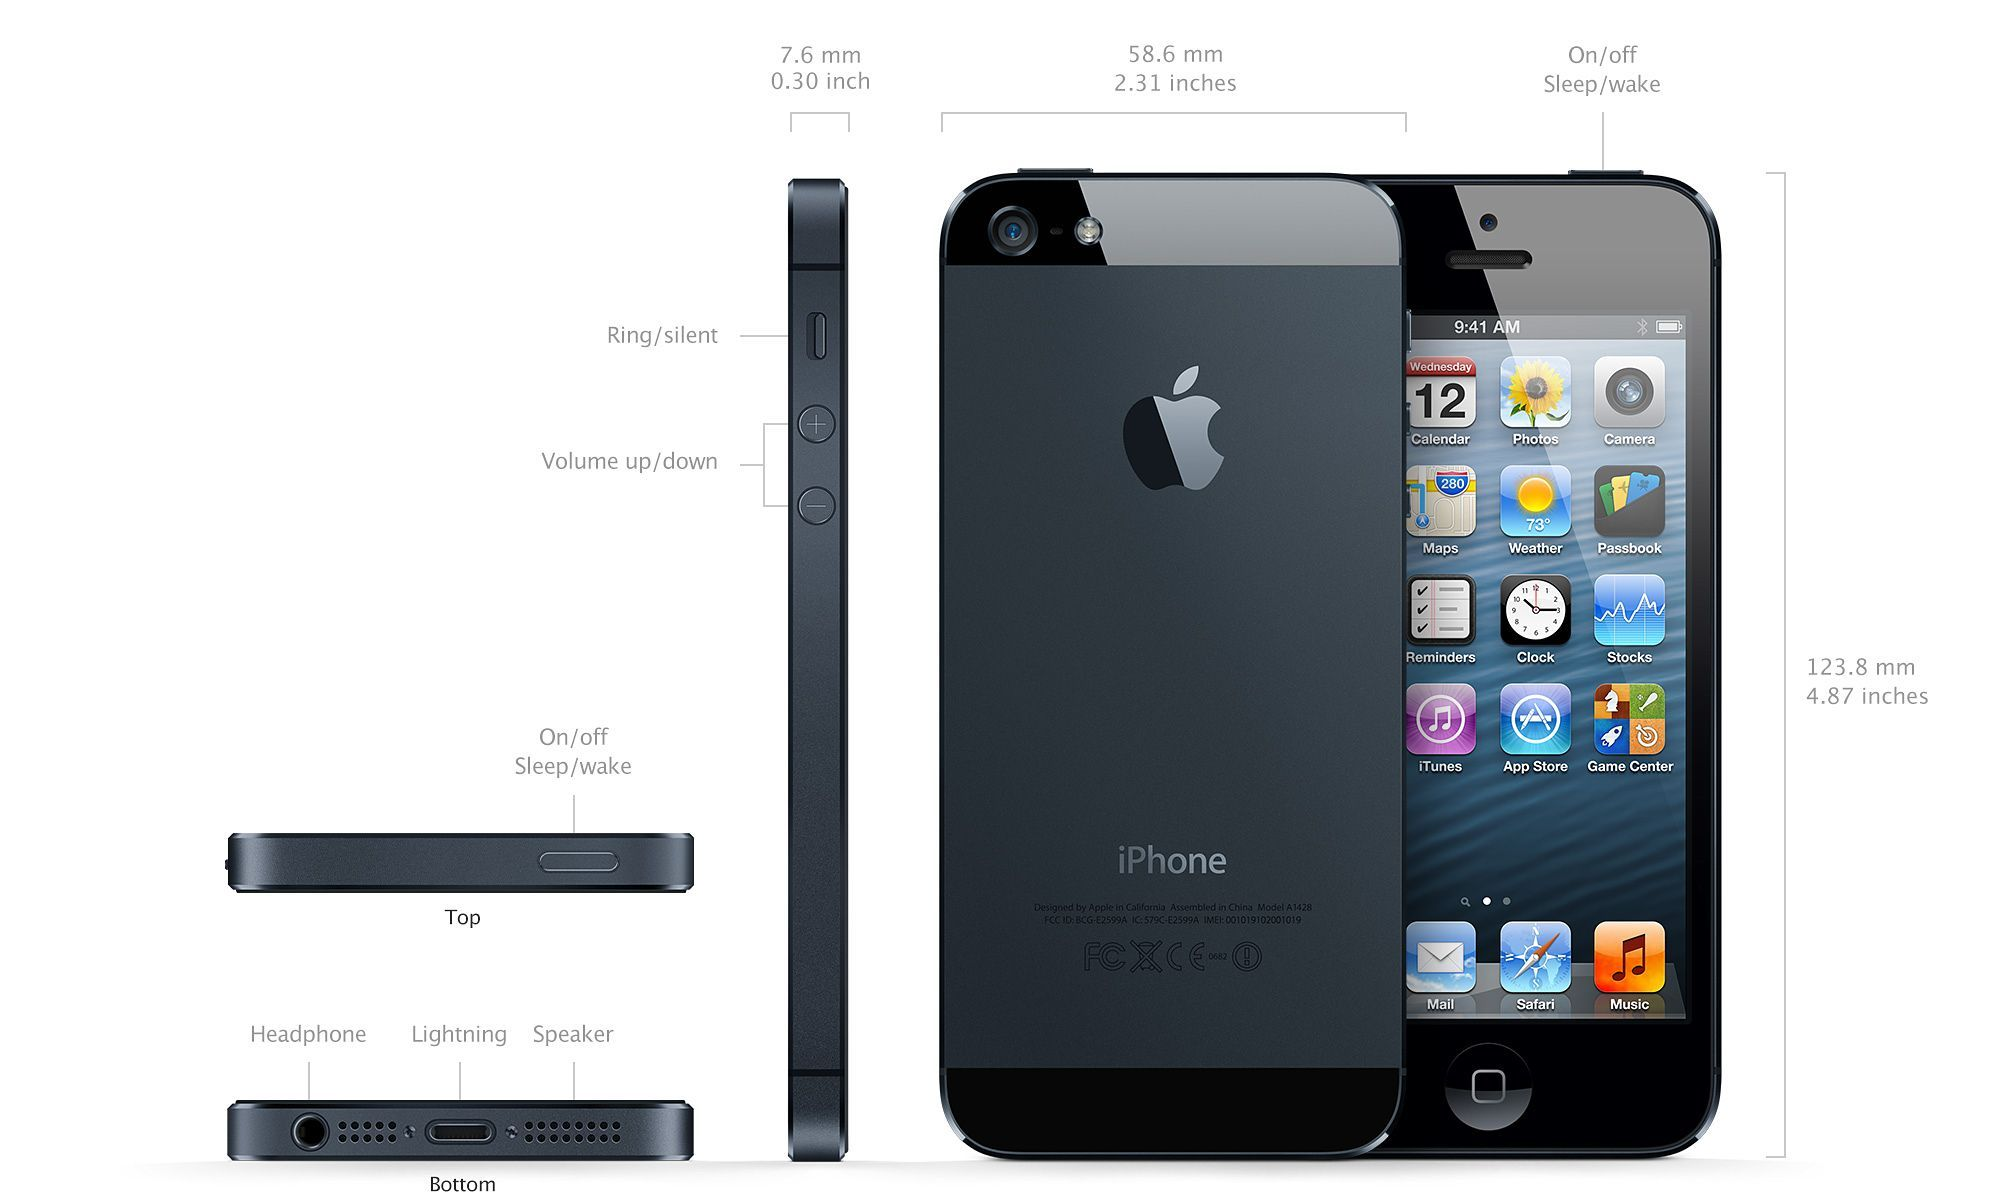 Gadget Guide Iphone 5 (With images) Iphone, Boost